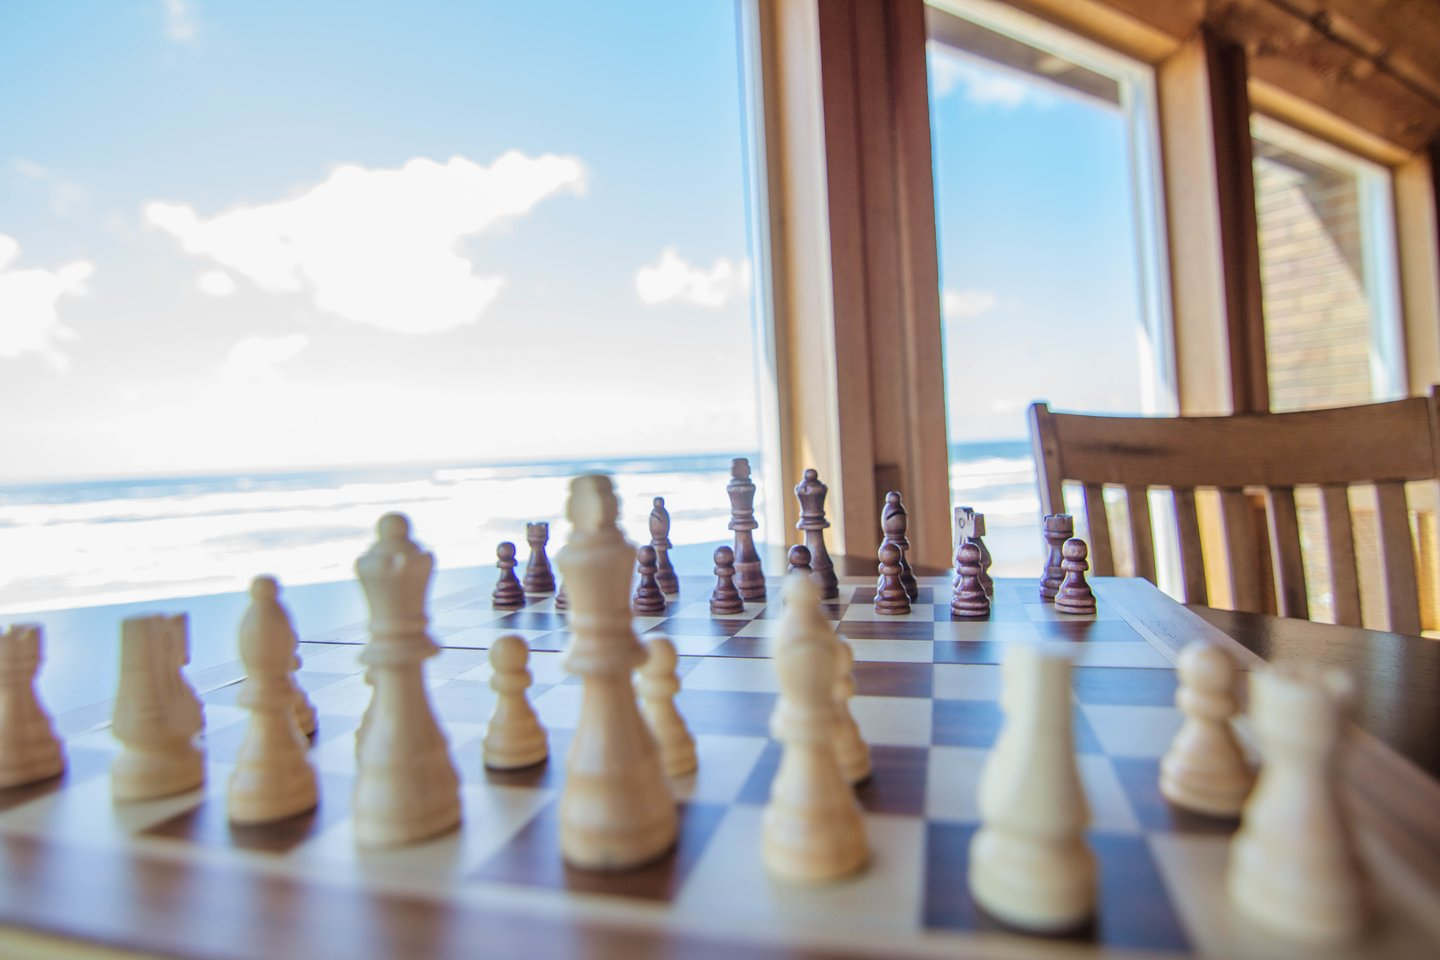 Enjoy chess with an ocean view.